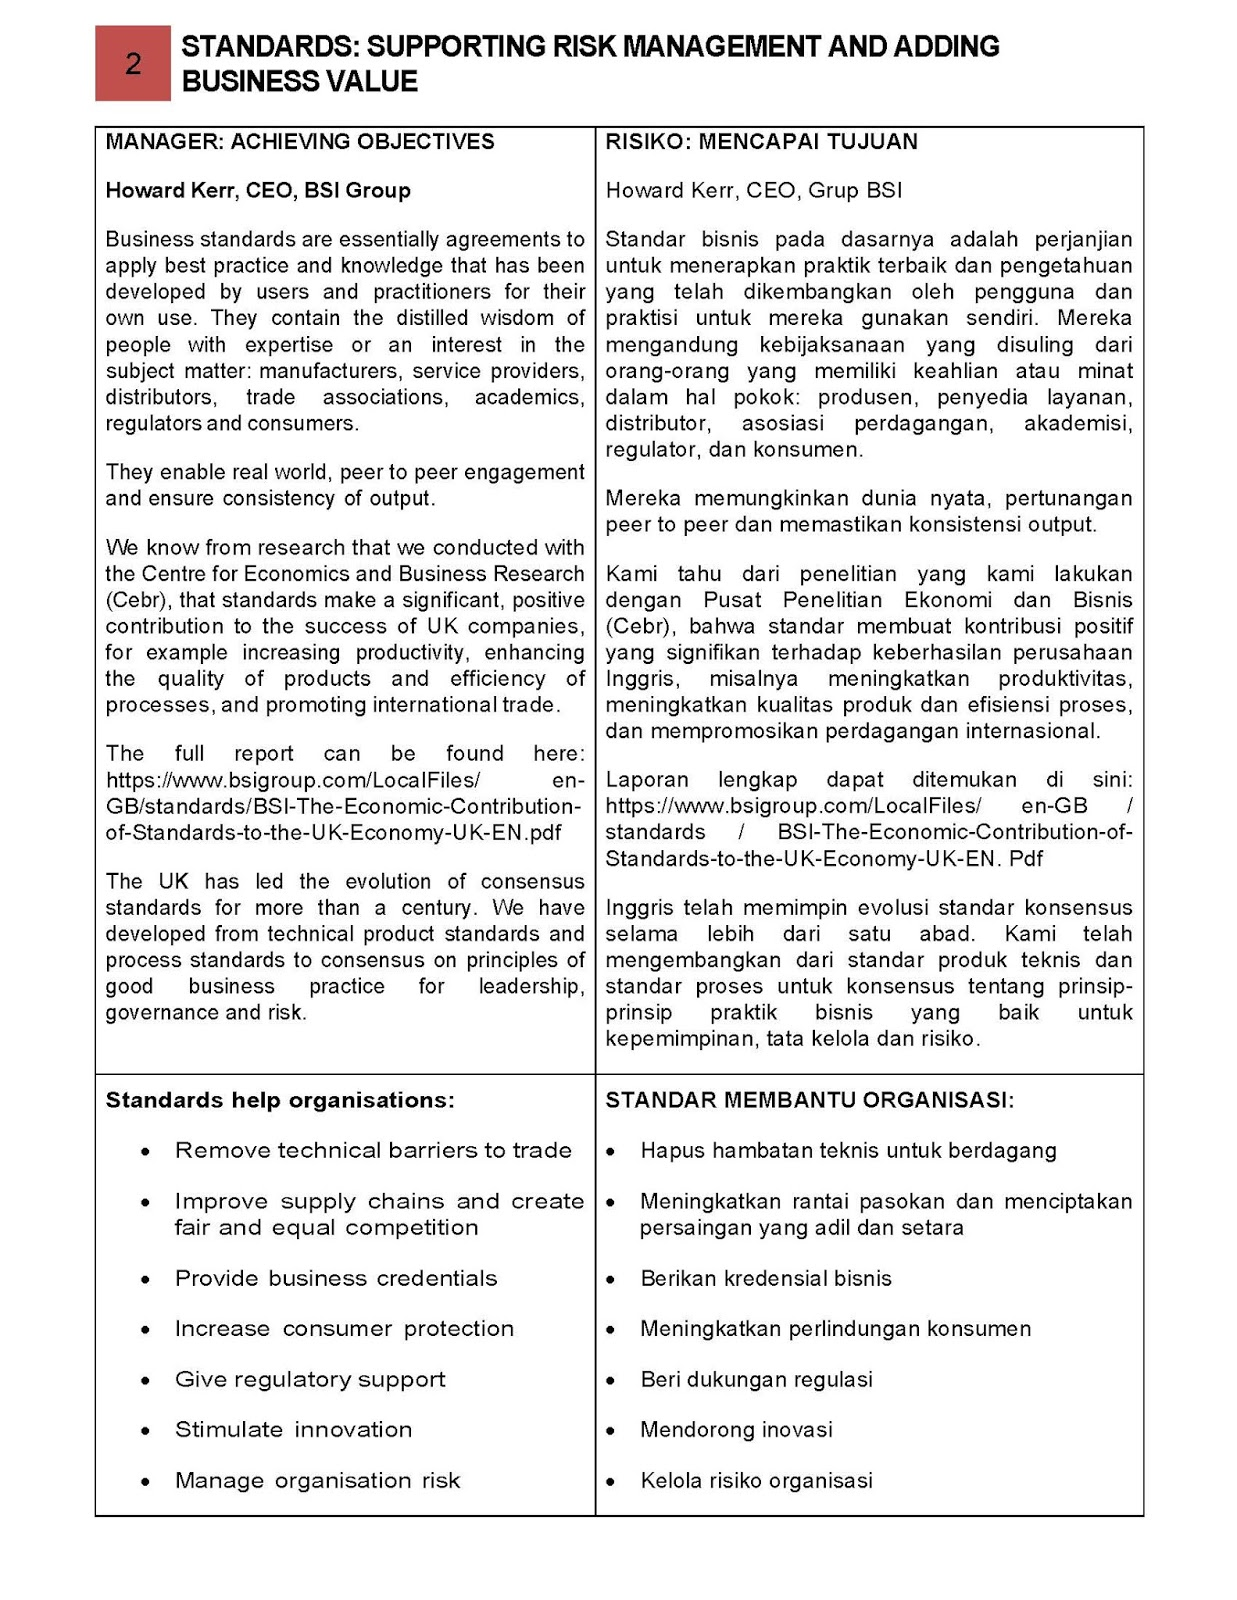 Standard Manajemen Risiko Standards Supporting Risk Management And Adding Business Value